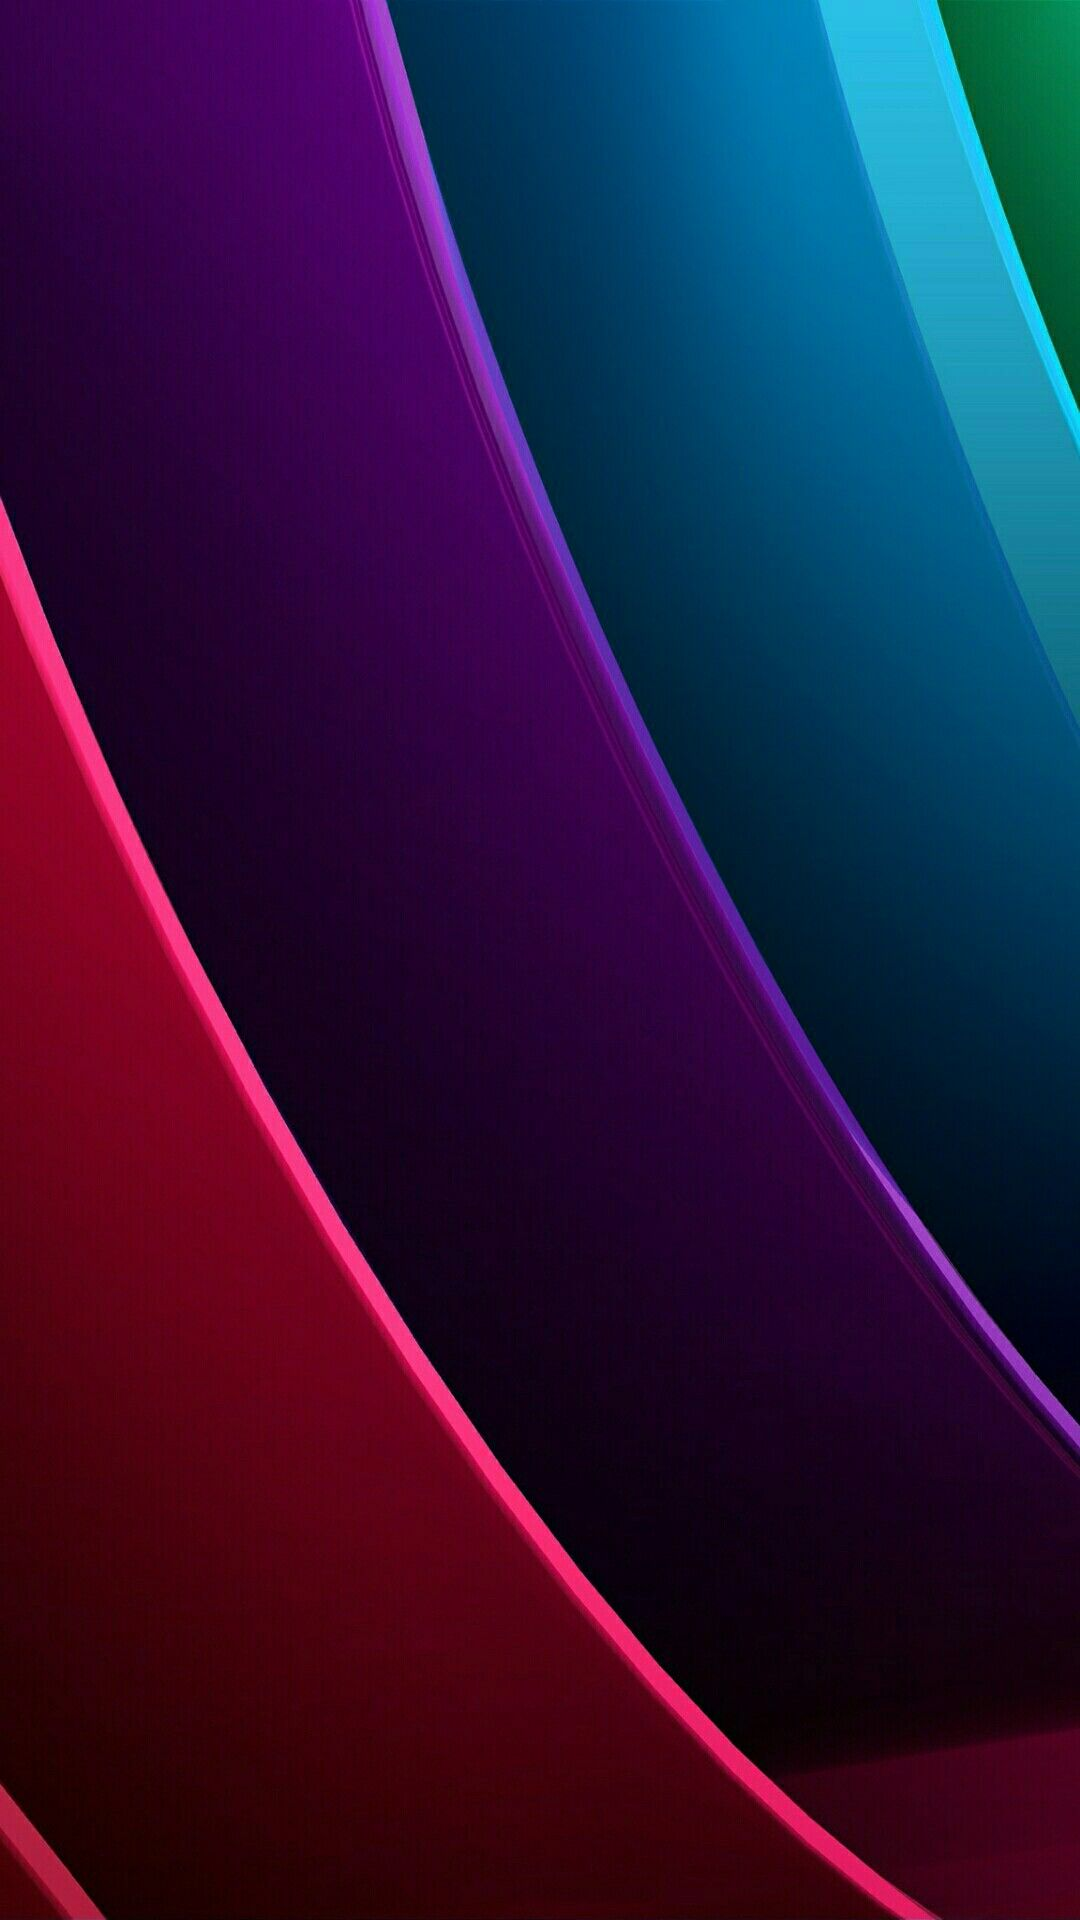 pinjoy on color code | pinterest | wallpaper, colorful wallpaper